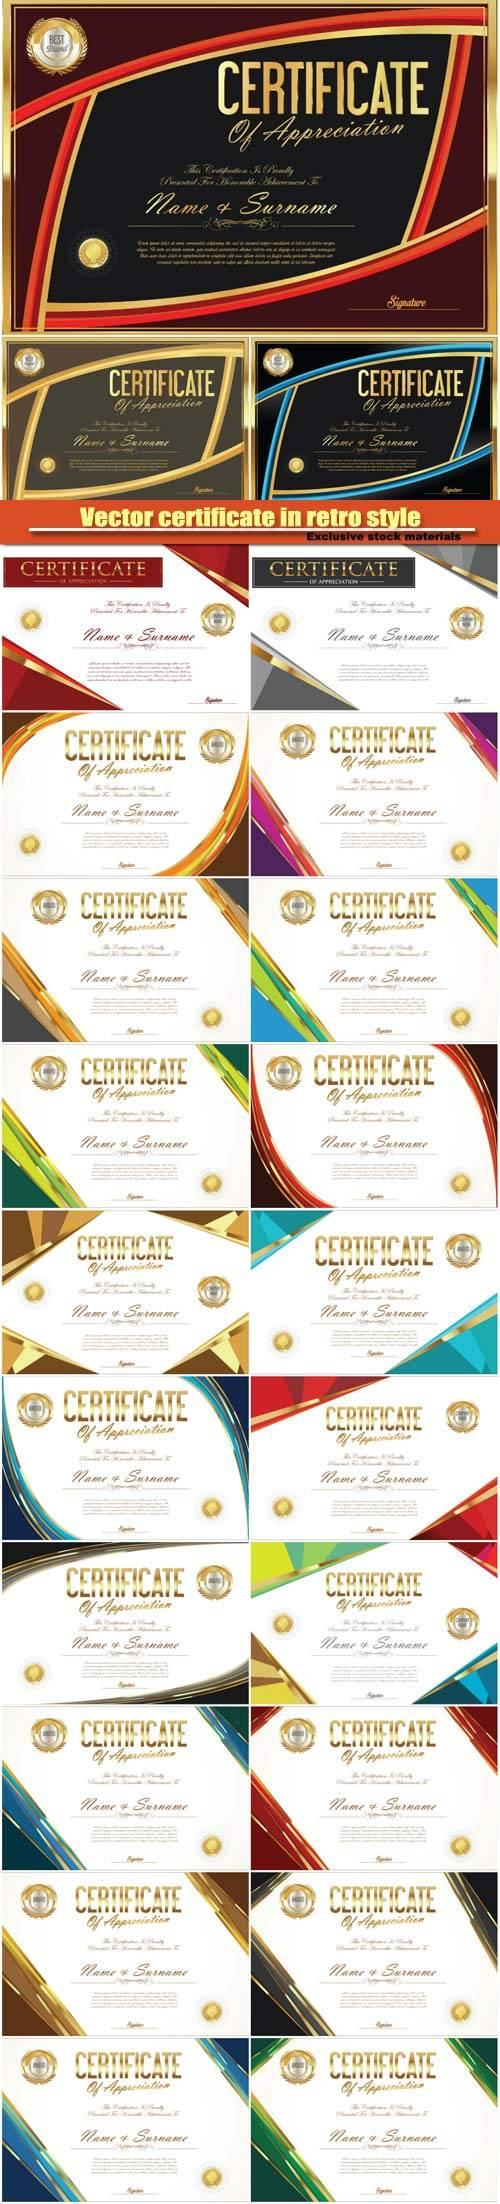 Vector certificate with a gold design in retro style #4